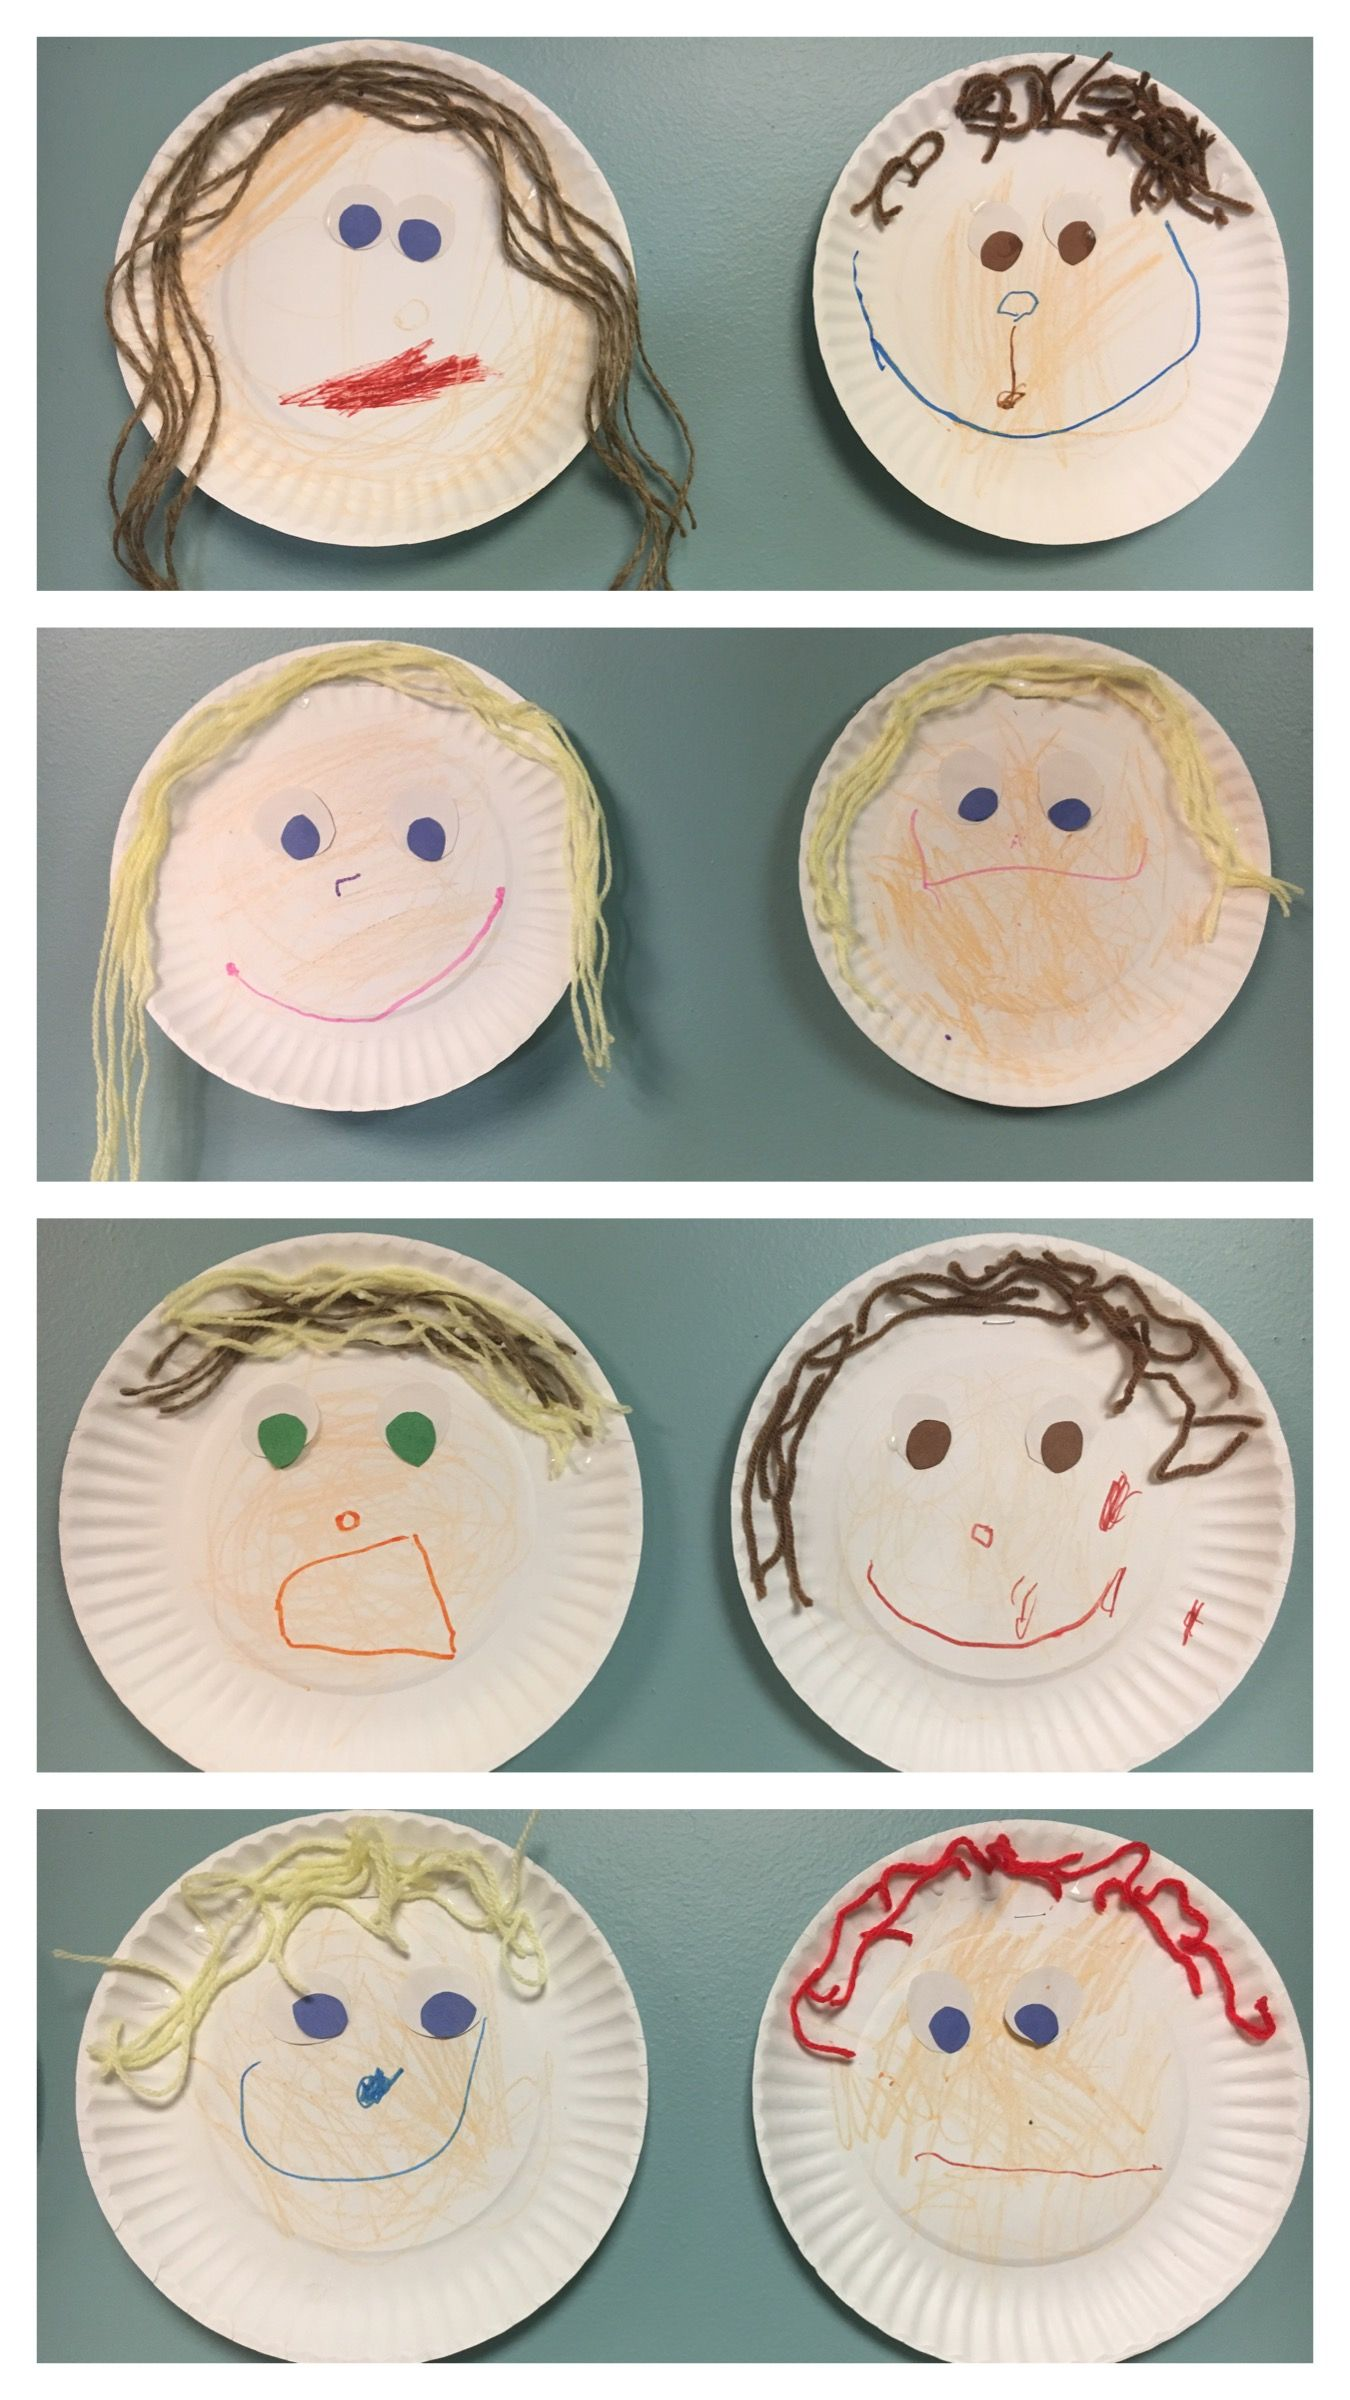 Self Portrait Paper Plate Art Pre K All About Me Week